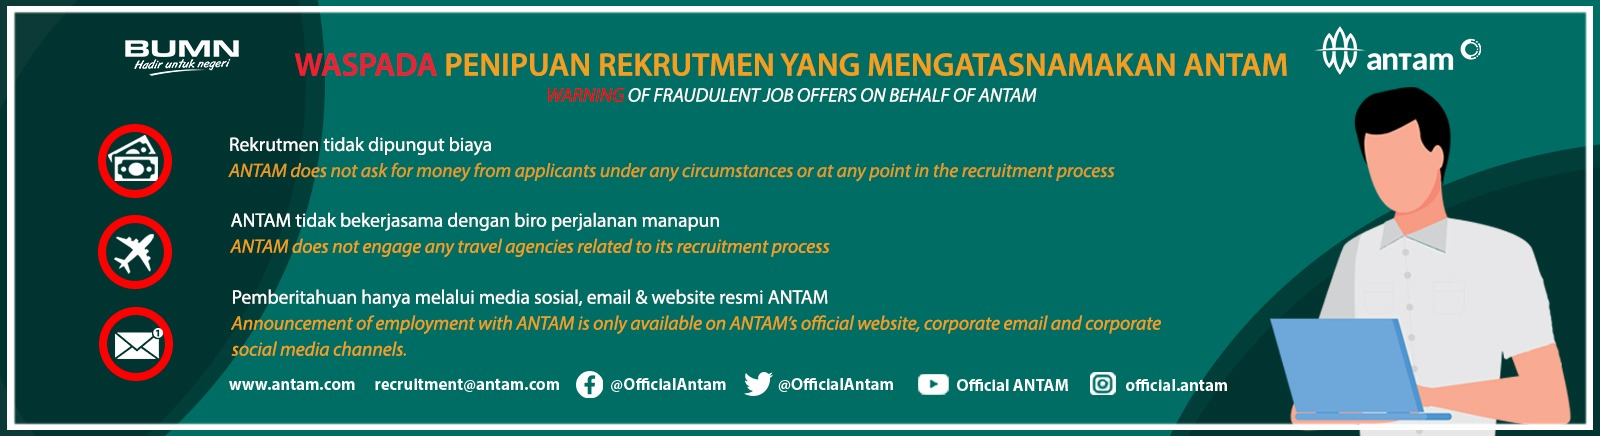 Warning of Fraudulent Job Offers on Behalf of ANTAM